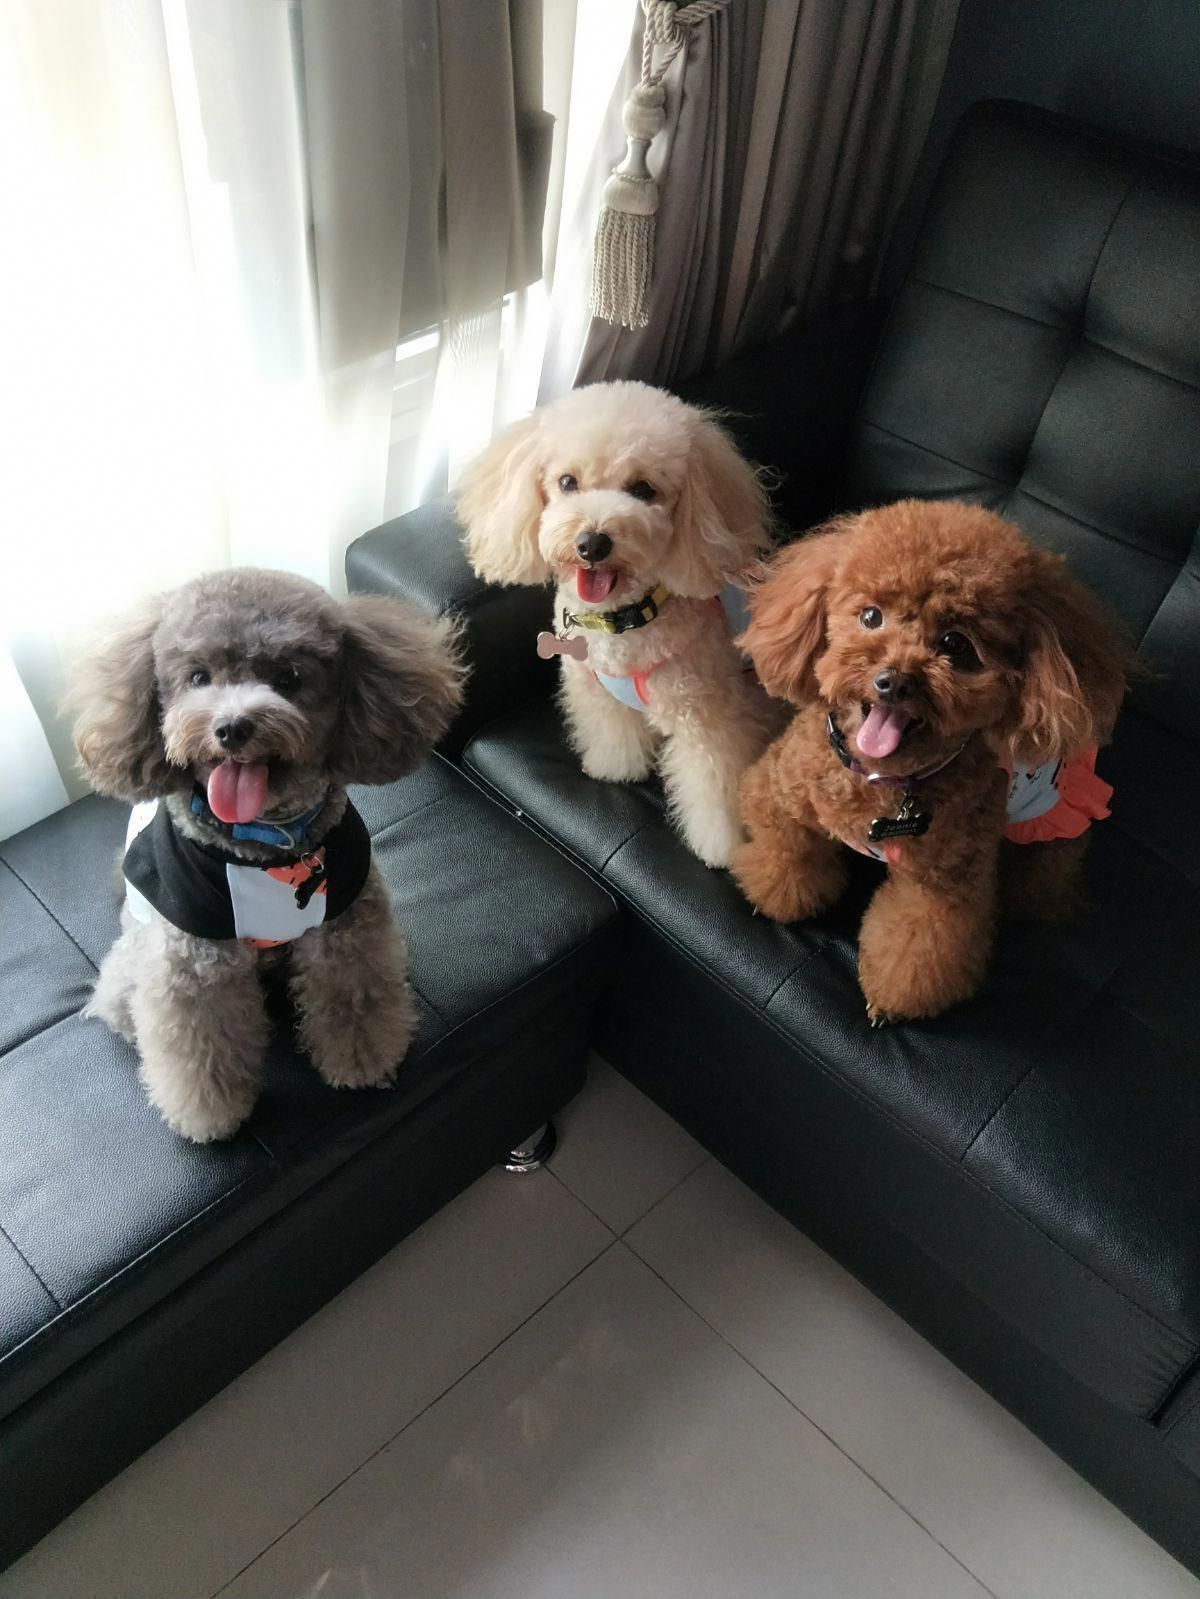 Everything I like about the Very Smart Poodle Pups #poodleboy #whitepoodle Source by elizabeth123 The post Miniature Poodle appeared first on Floyd Pet Supplies.